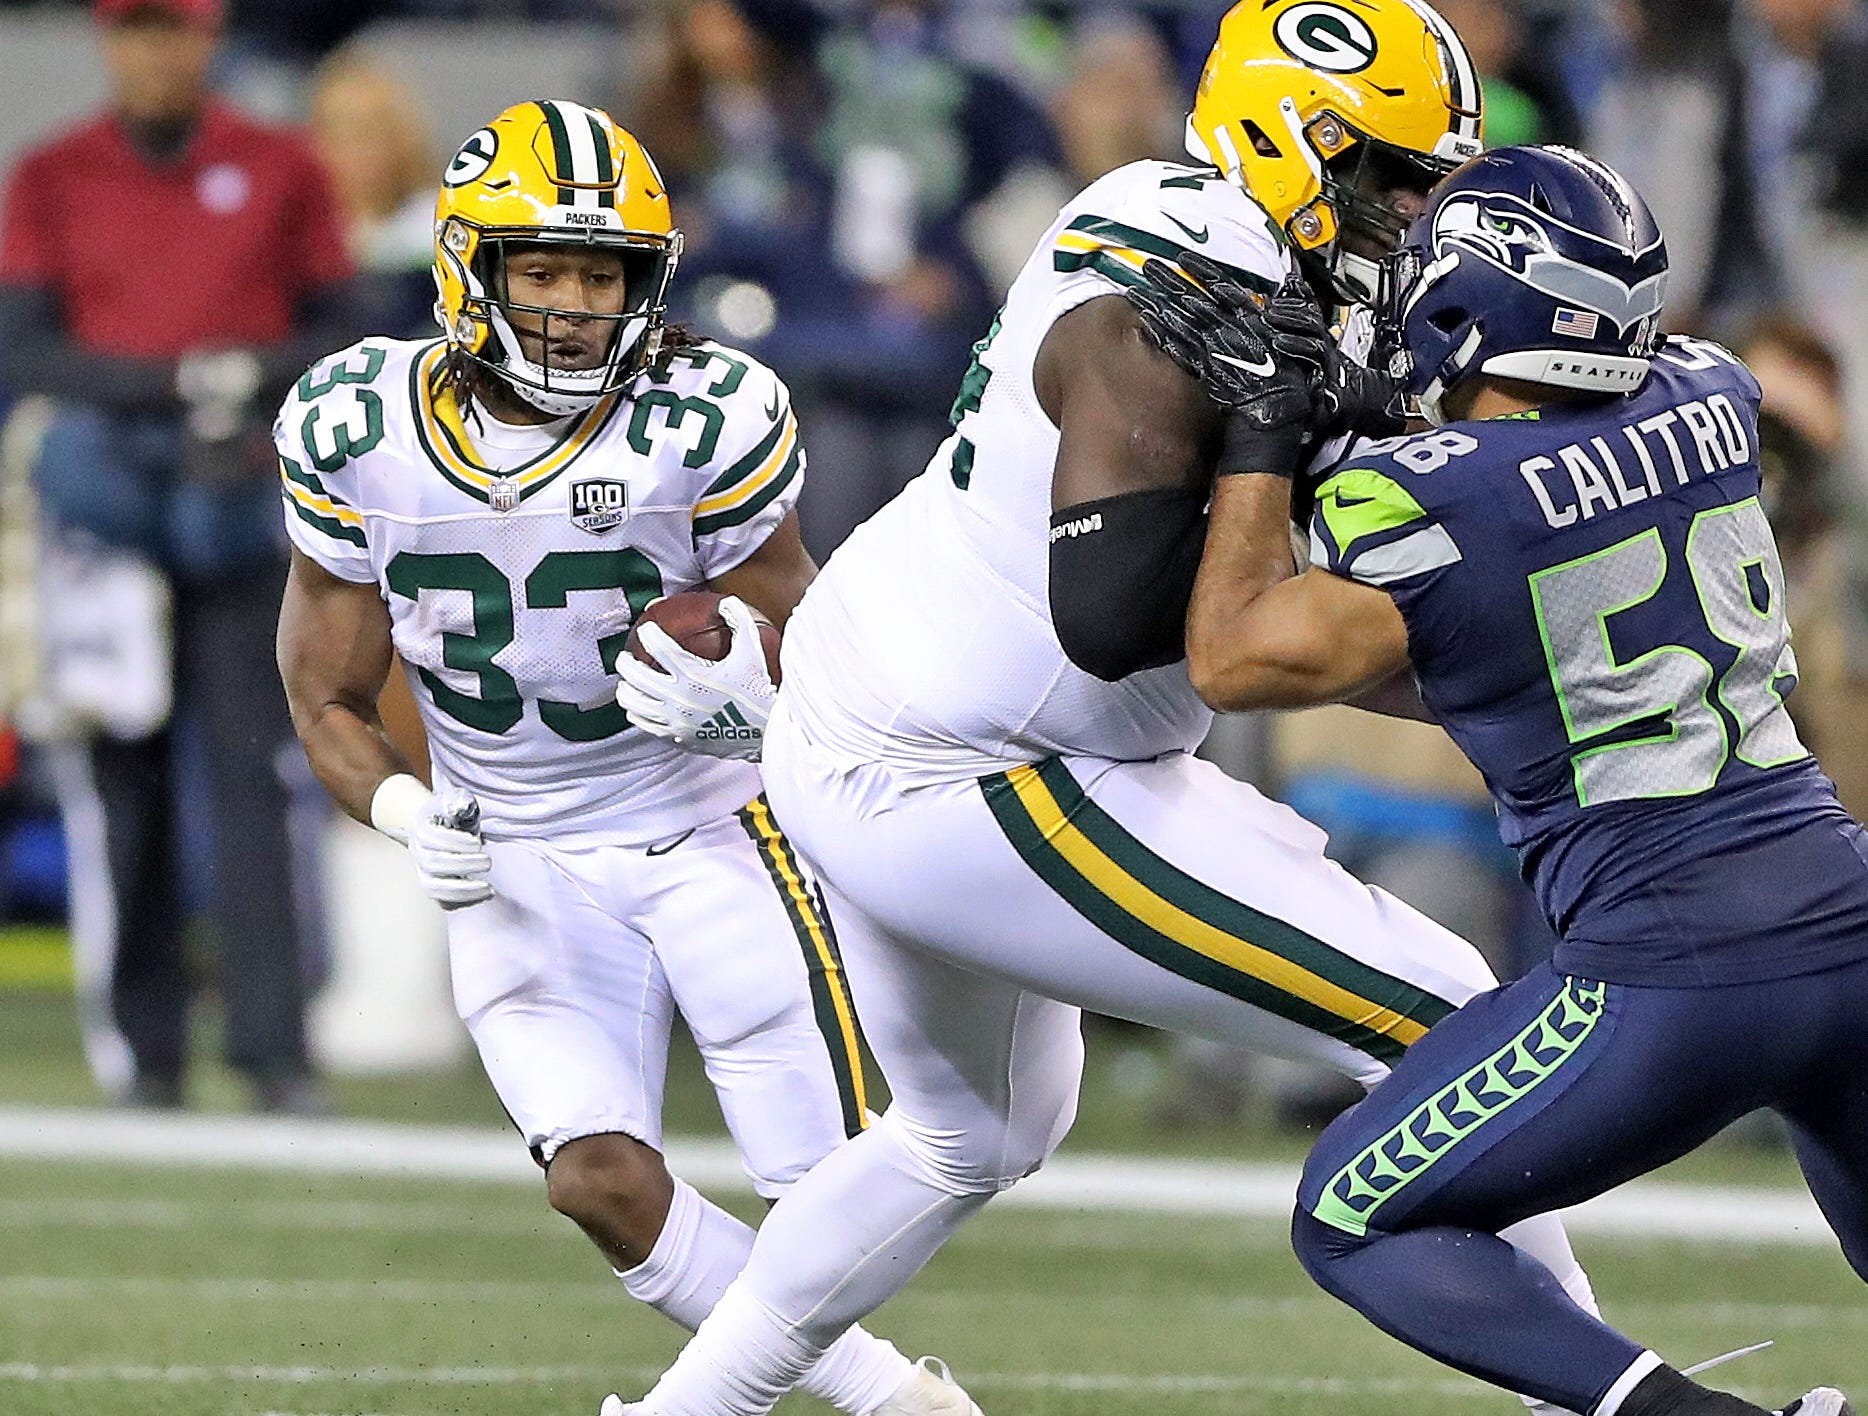 Green Bay Packers running back Aaron Jones (33) cuts behind the block of offensive guard Byron Bell (74) on outside linebacker Austin Calitro (58) on a screen pass against the Seattle Seahawks at CenturyLink Field Thursday, November 15, 2018 in Seattle, WA. Jim Matthews/USA TODAY NETWORK-Wis